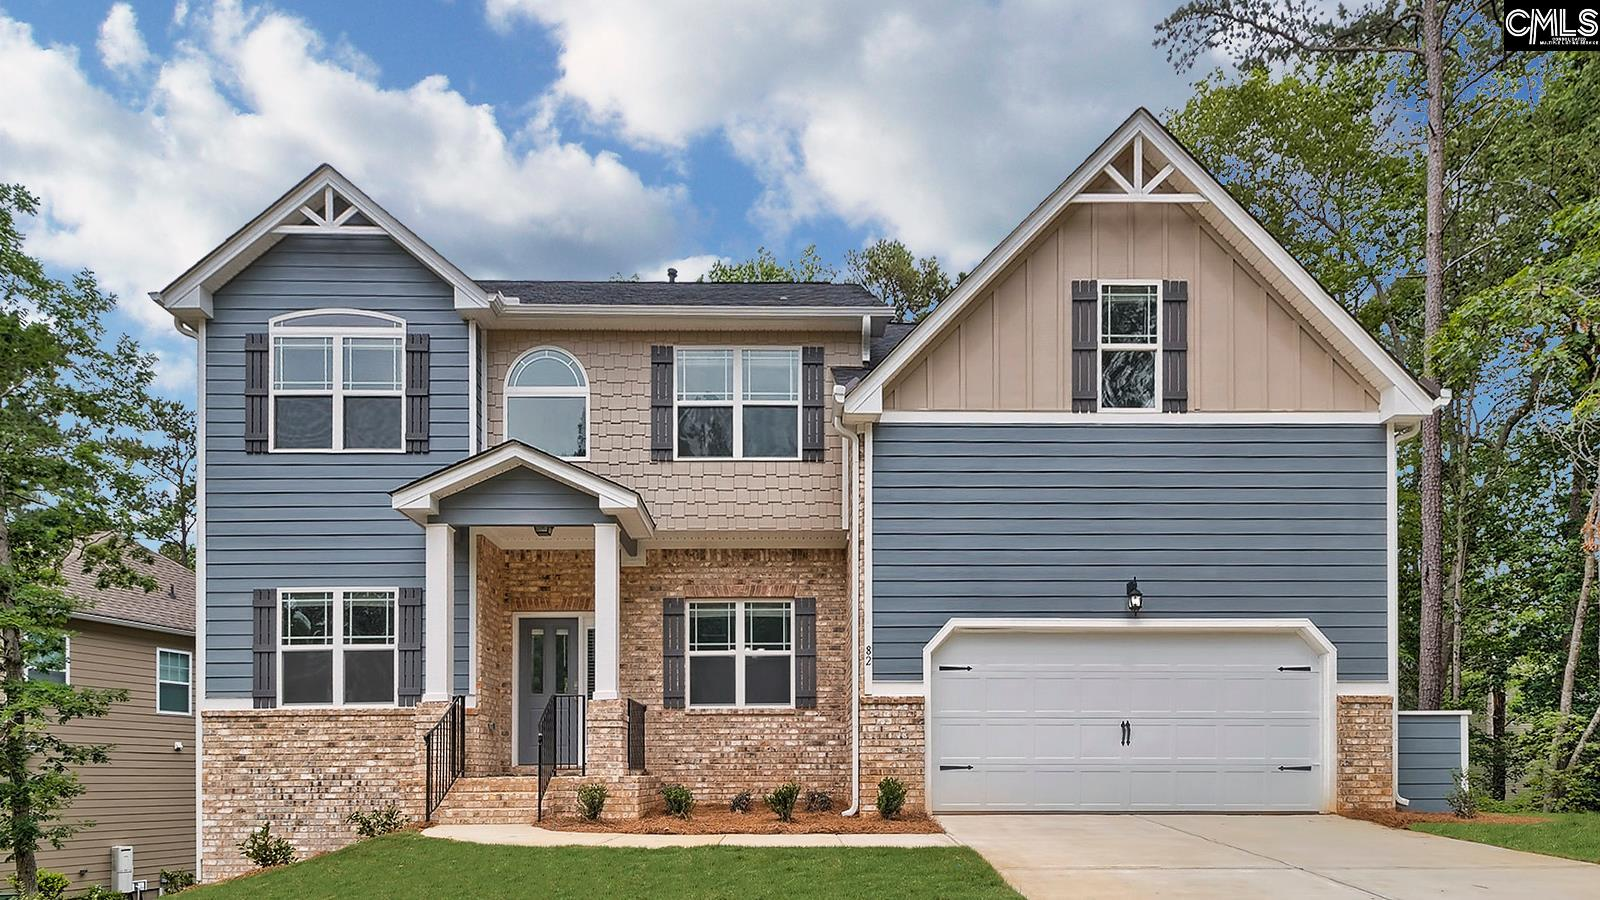 1182 University Blythewood, SC 29016